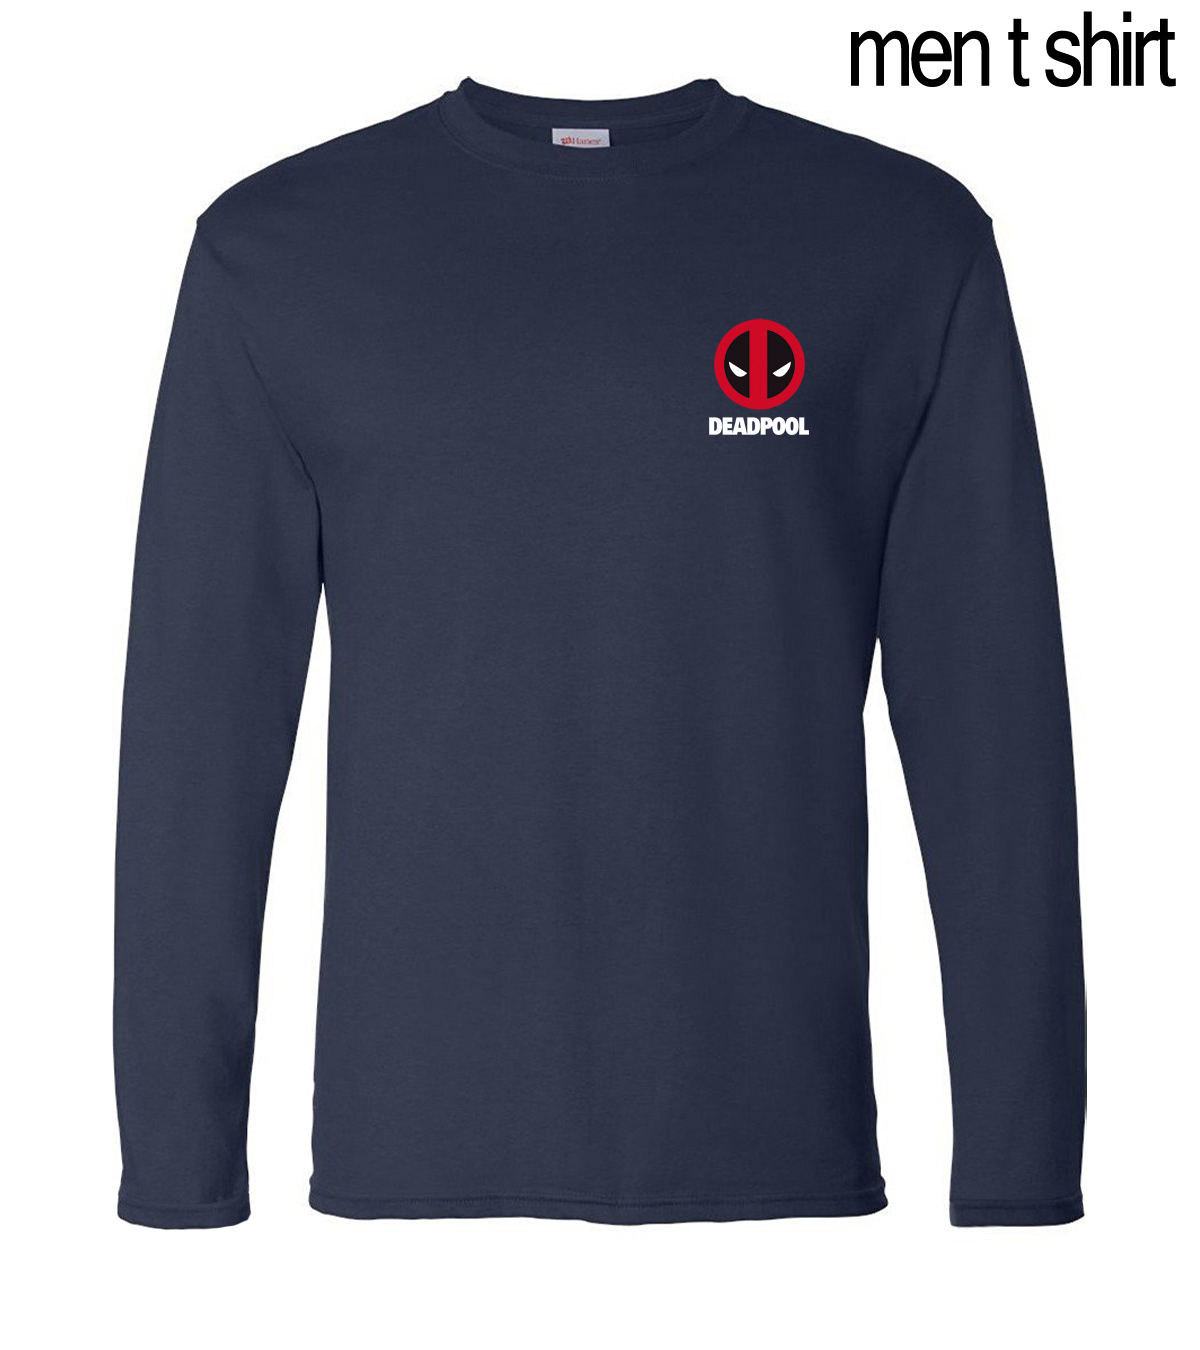 2019 Spring Summer Deadpool Long Sleeve Tee Shirts Men 100% Cotton High Quality Male T-Shirts For Fans Slim Fit Brand-Clothing